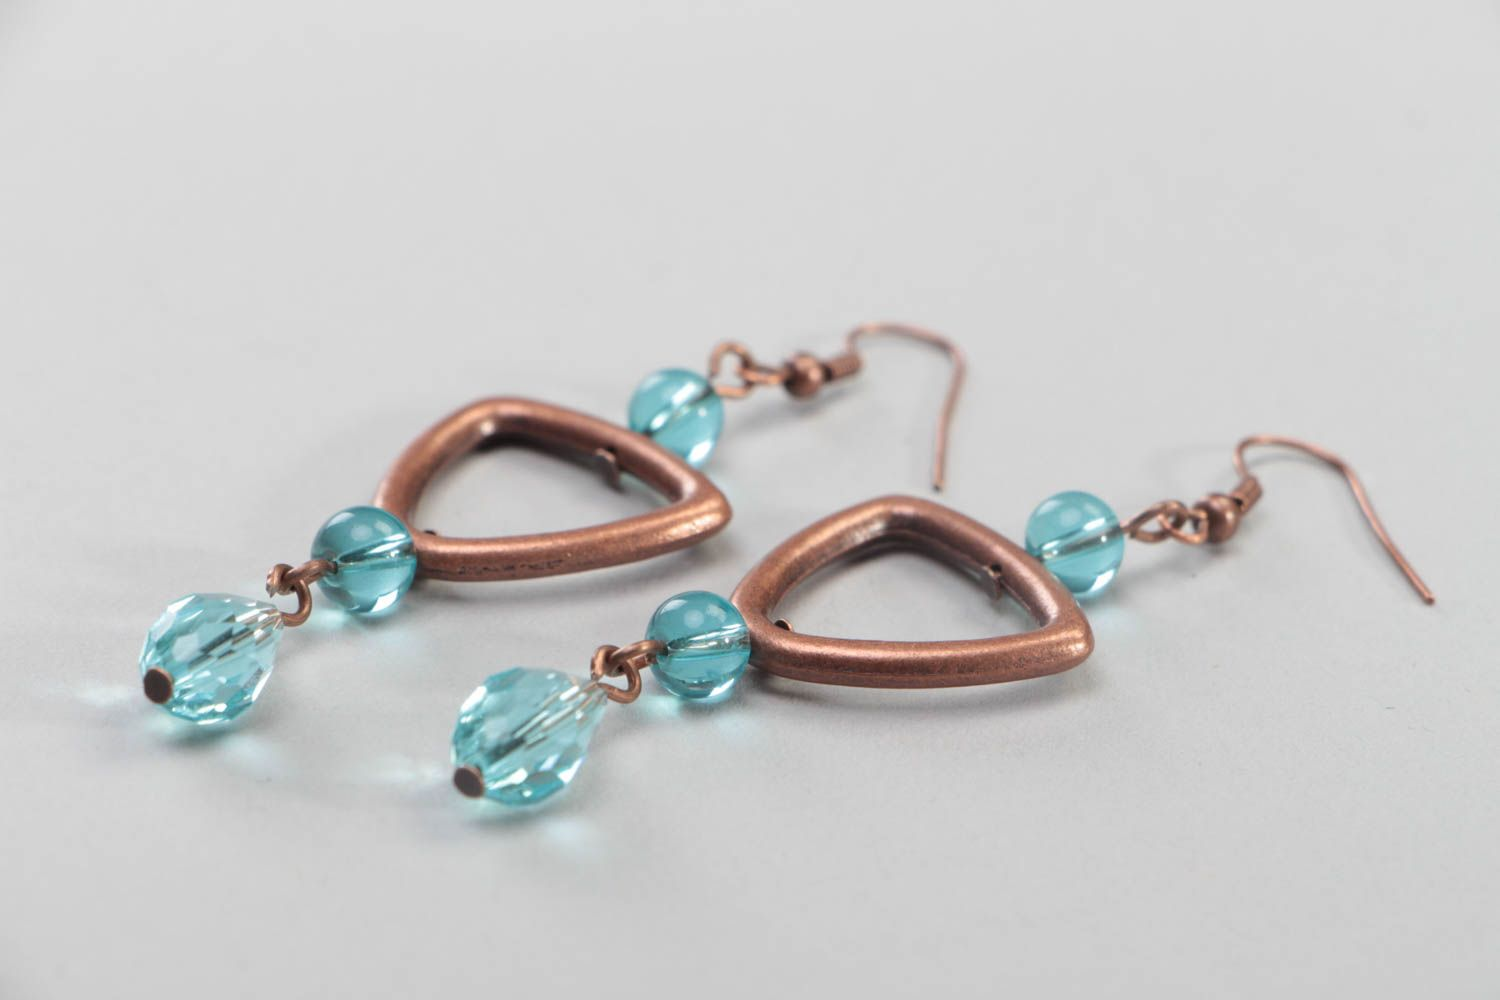 Handmade massive earrings accessories made of crystal beads copper jewelry photo 3